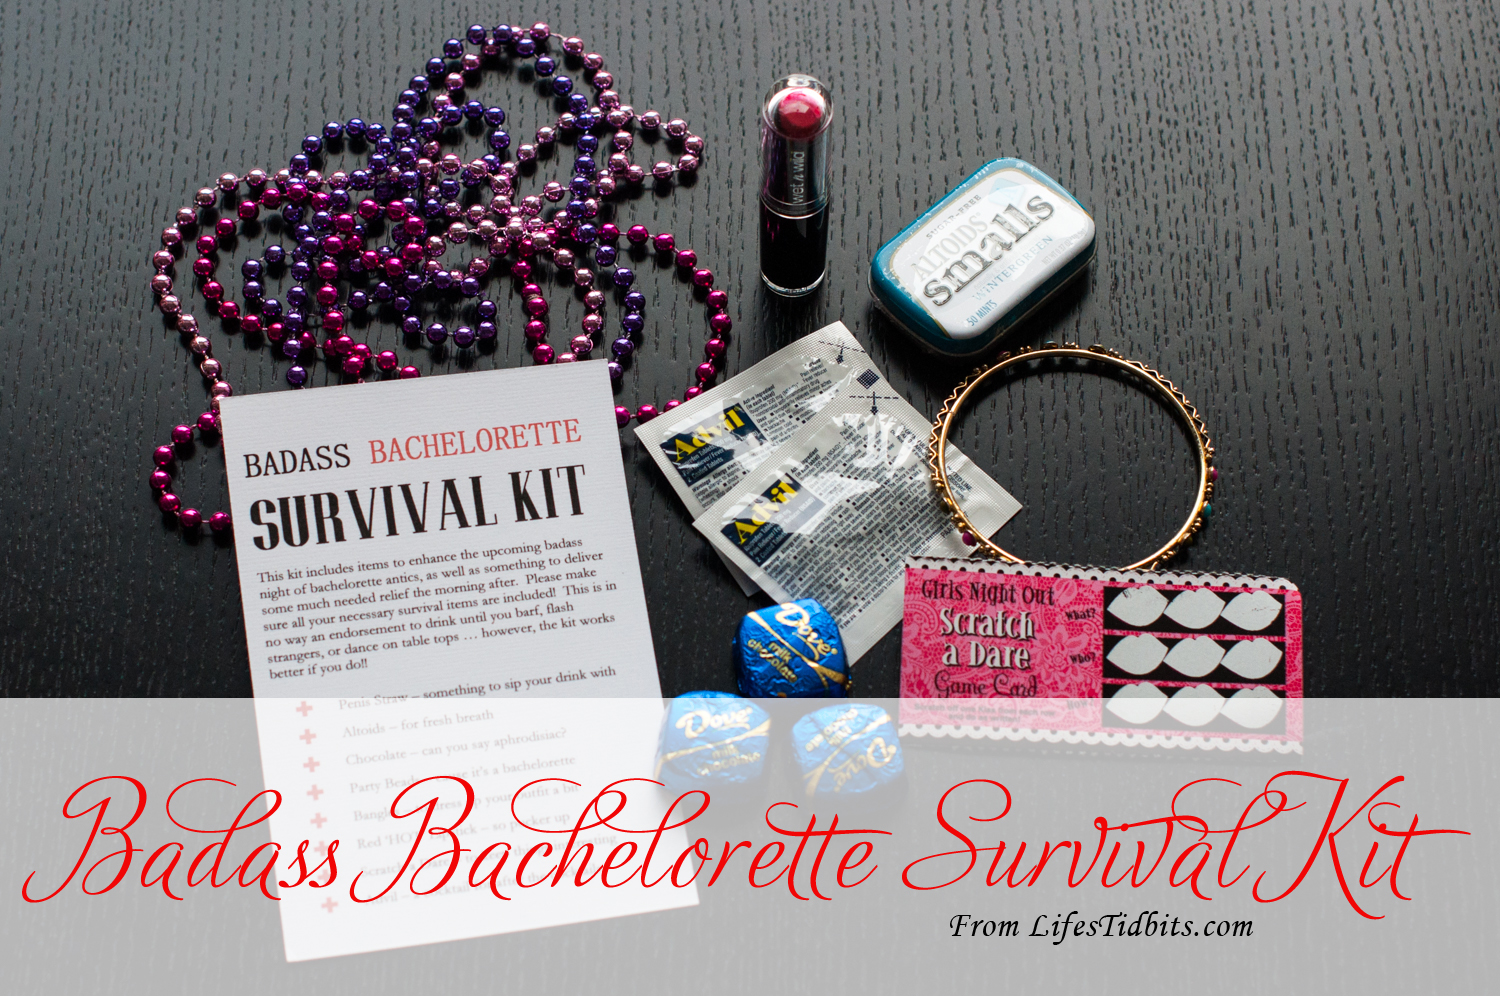 BacheloretteSurvivalKit